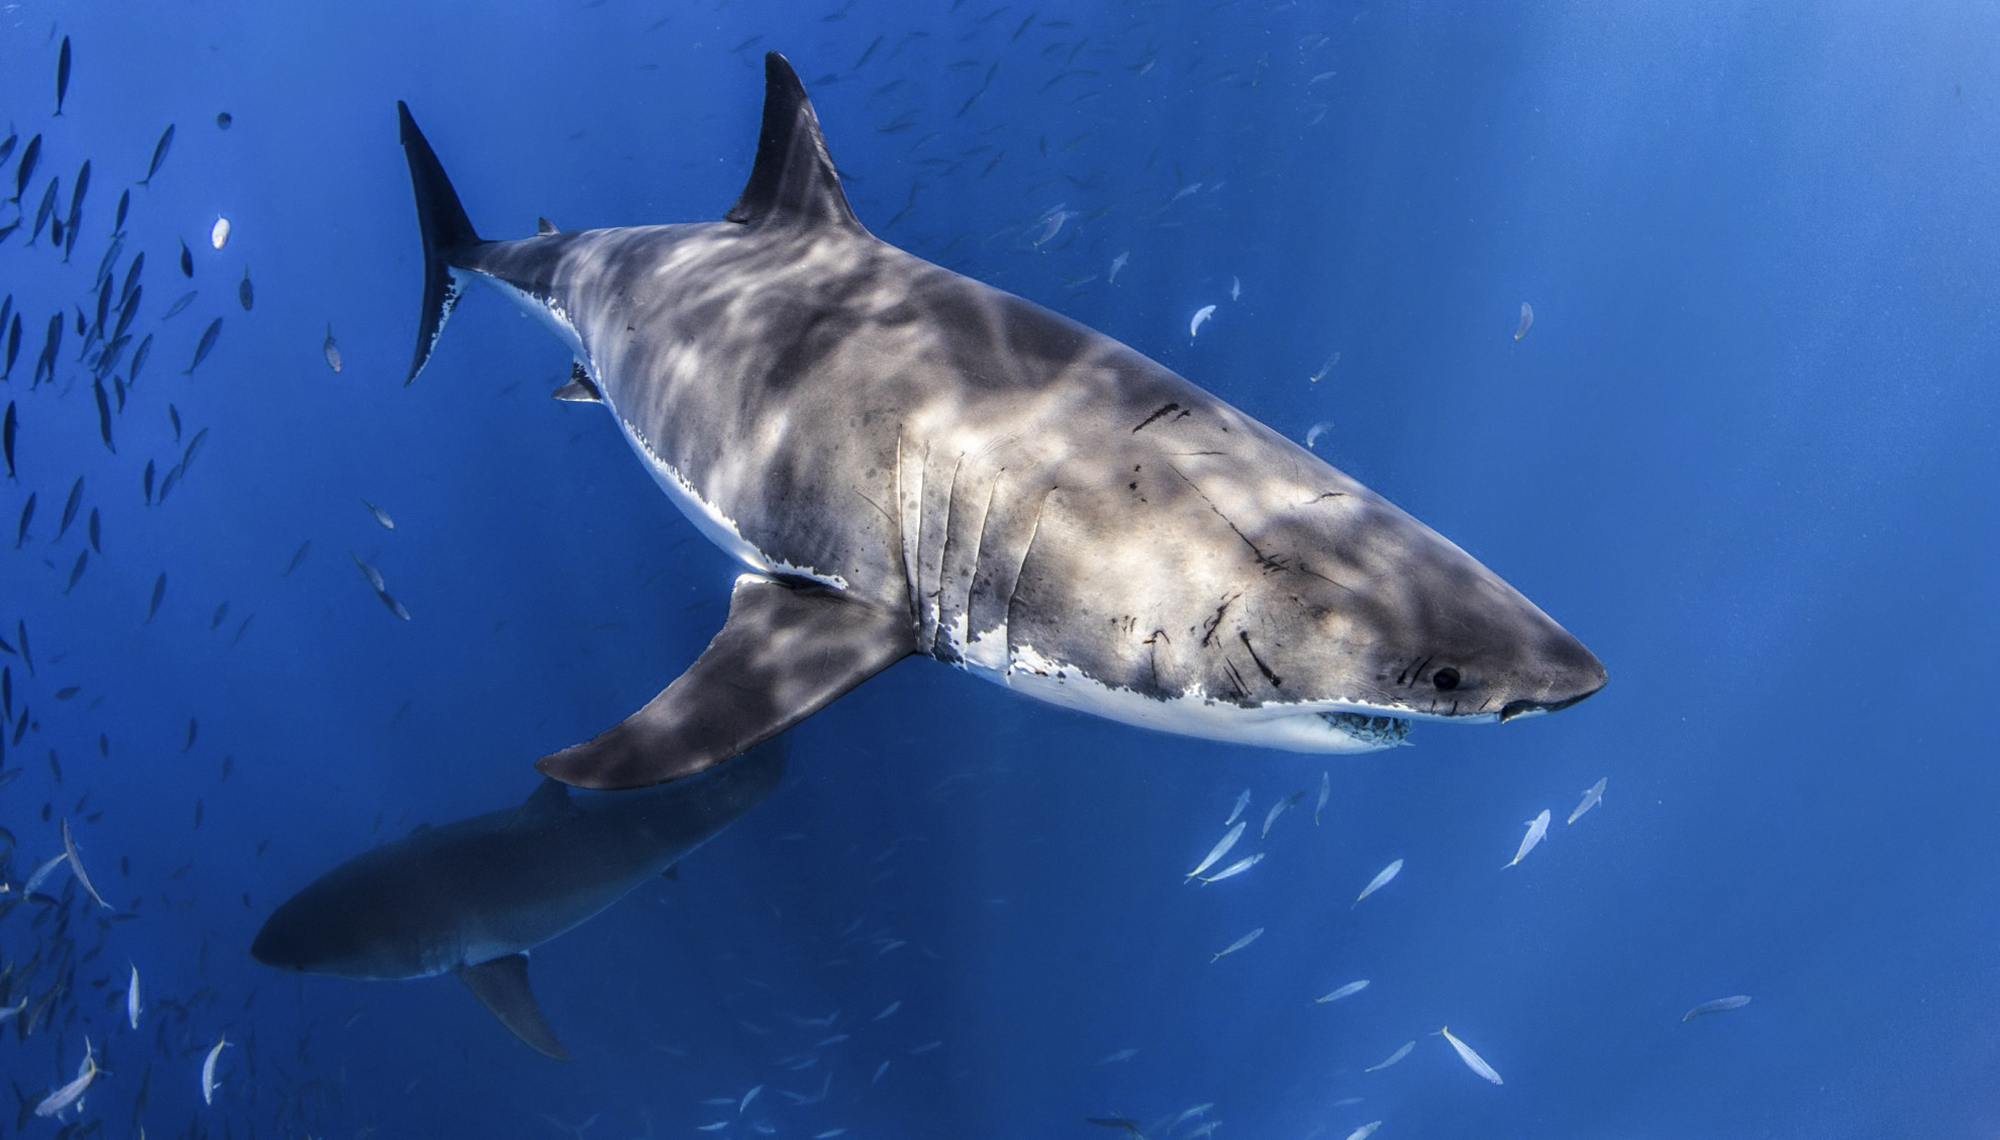 Two great whites at Guadalupe